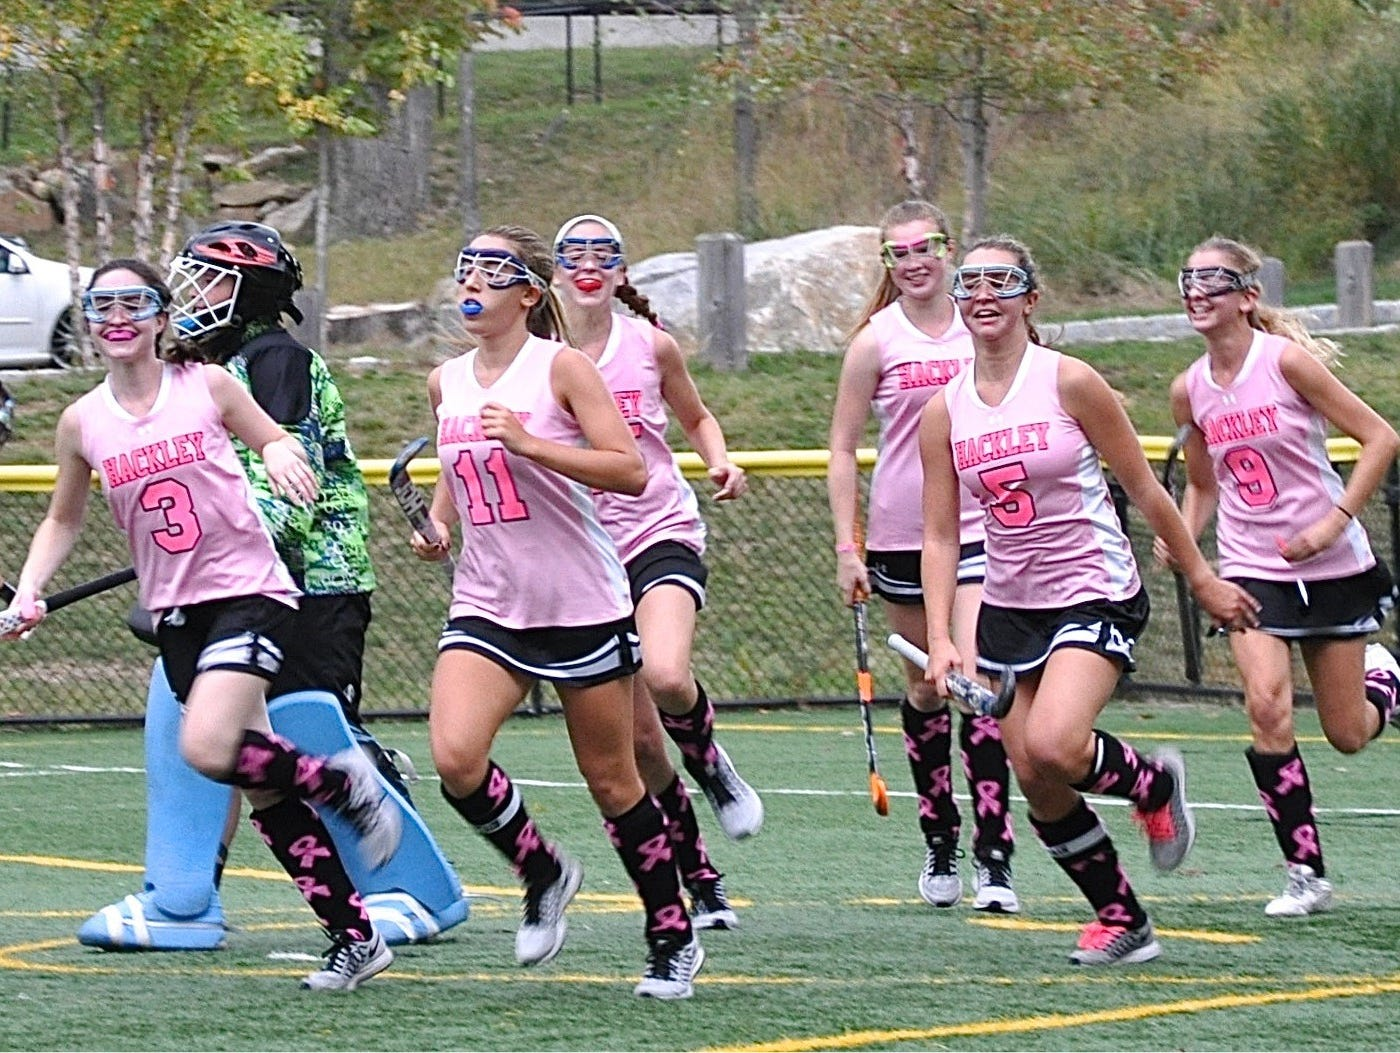 Hackley reacts to cutting Rye's lead in half on a goal by Ally Petitti (11) from Katie Bogart (5